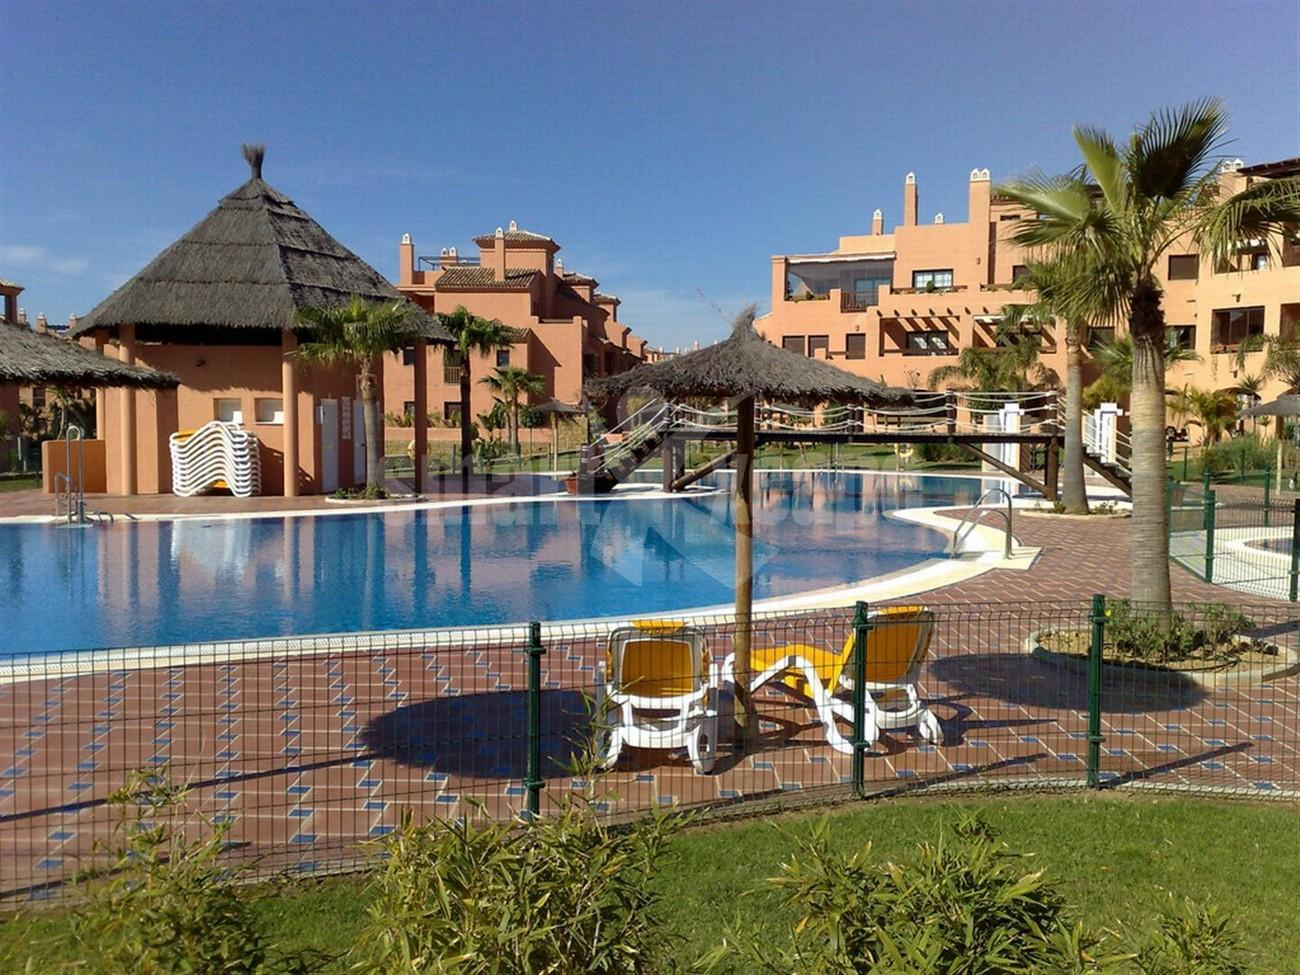 Apartment for Sale - 350.000€ - New Golden Mile, Costa del Sol - Ref: 5441